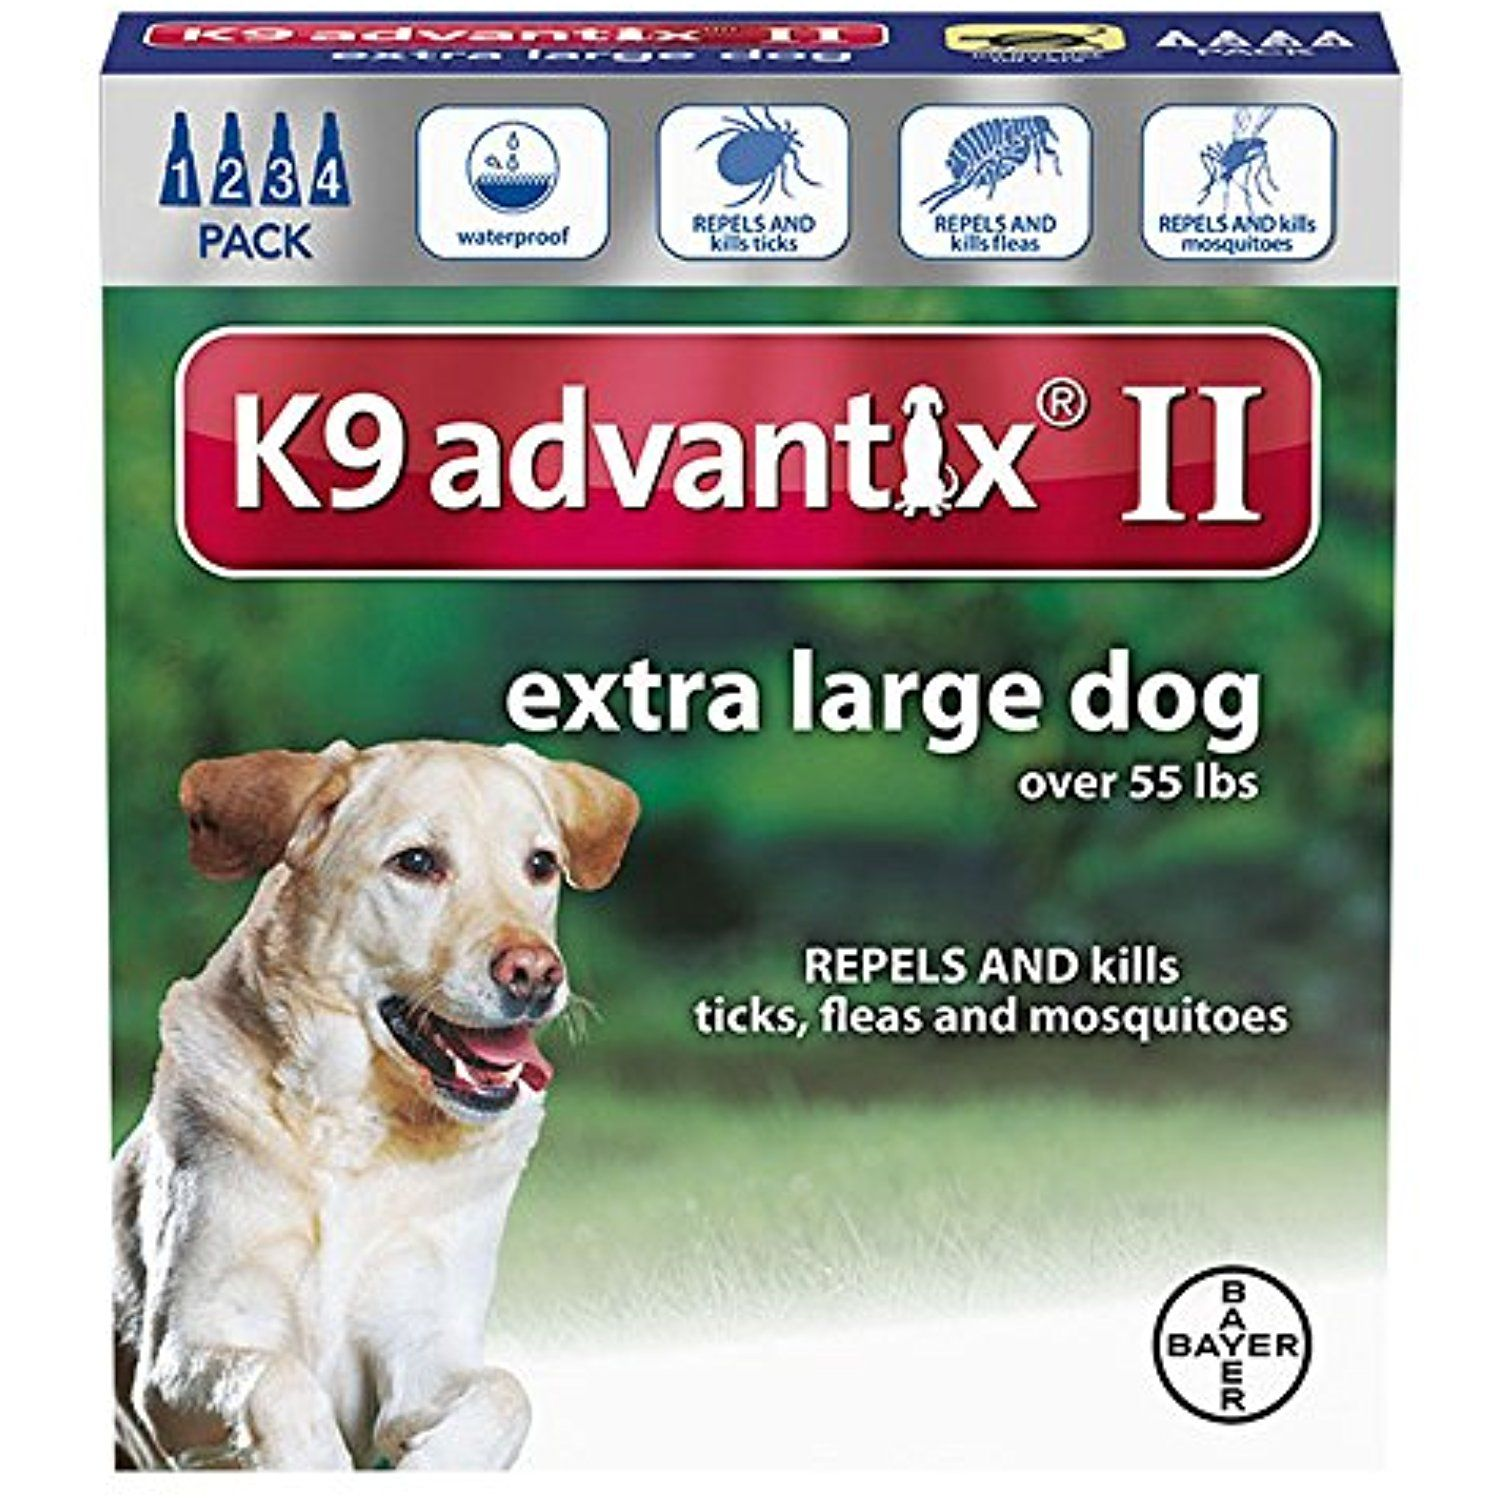 K9 Advantix Ii For Dogs 55 Pounds And Over 4 Month Supply By K 9 Advantix You Can Click Image To Review More Details This Is Dry Dog Food Dog Pounds Dogs